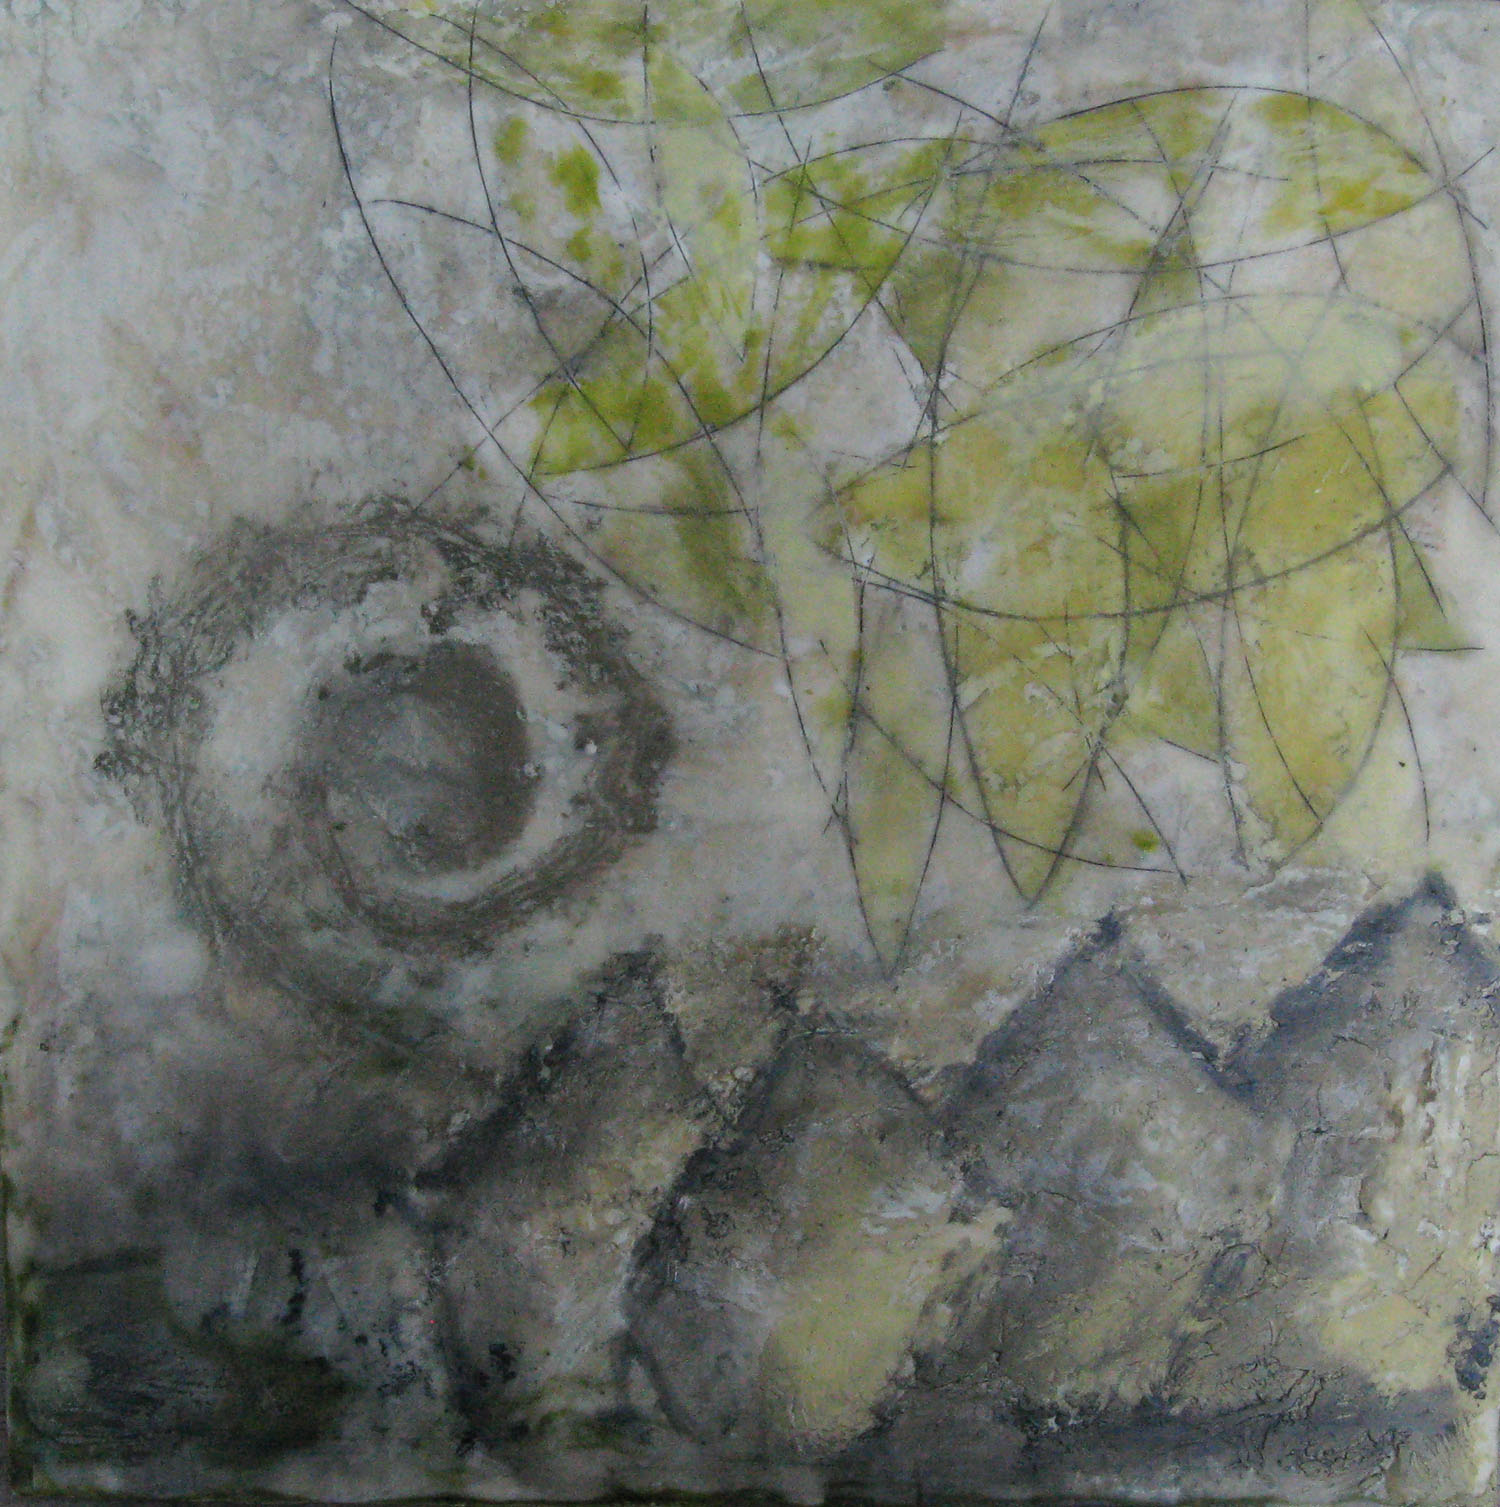 An Event in the Neighborhood, encaustic & oil on panel, 16x16, 2012